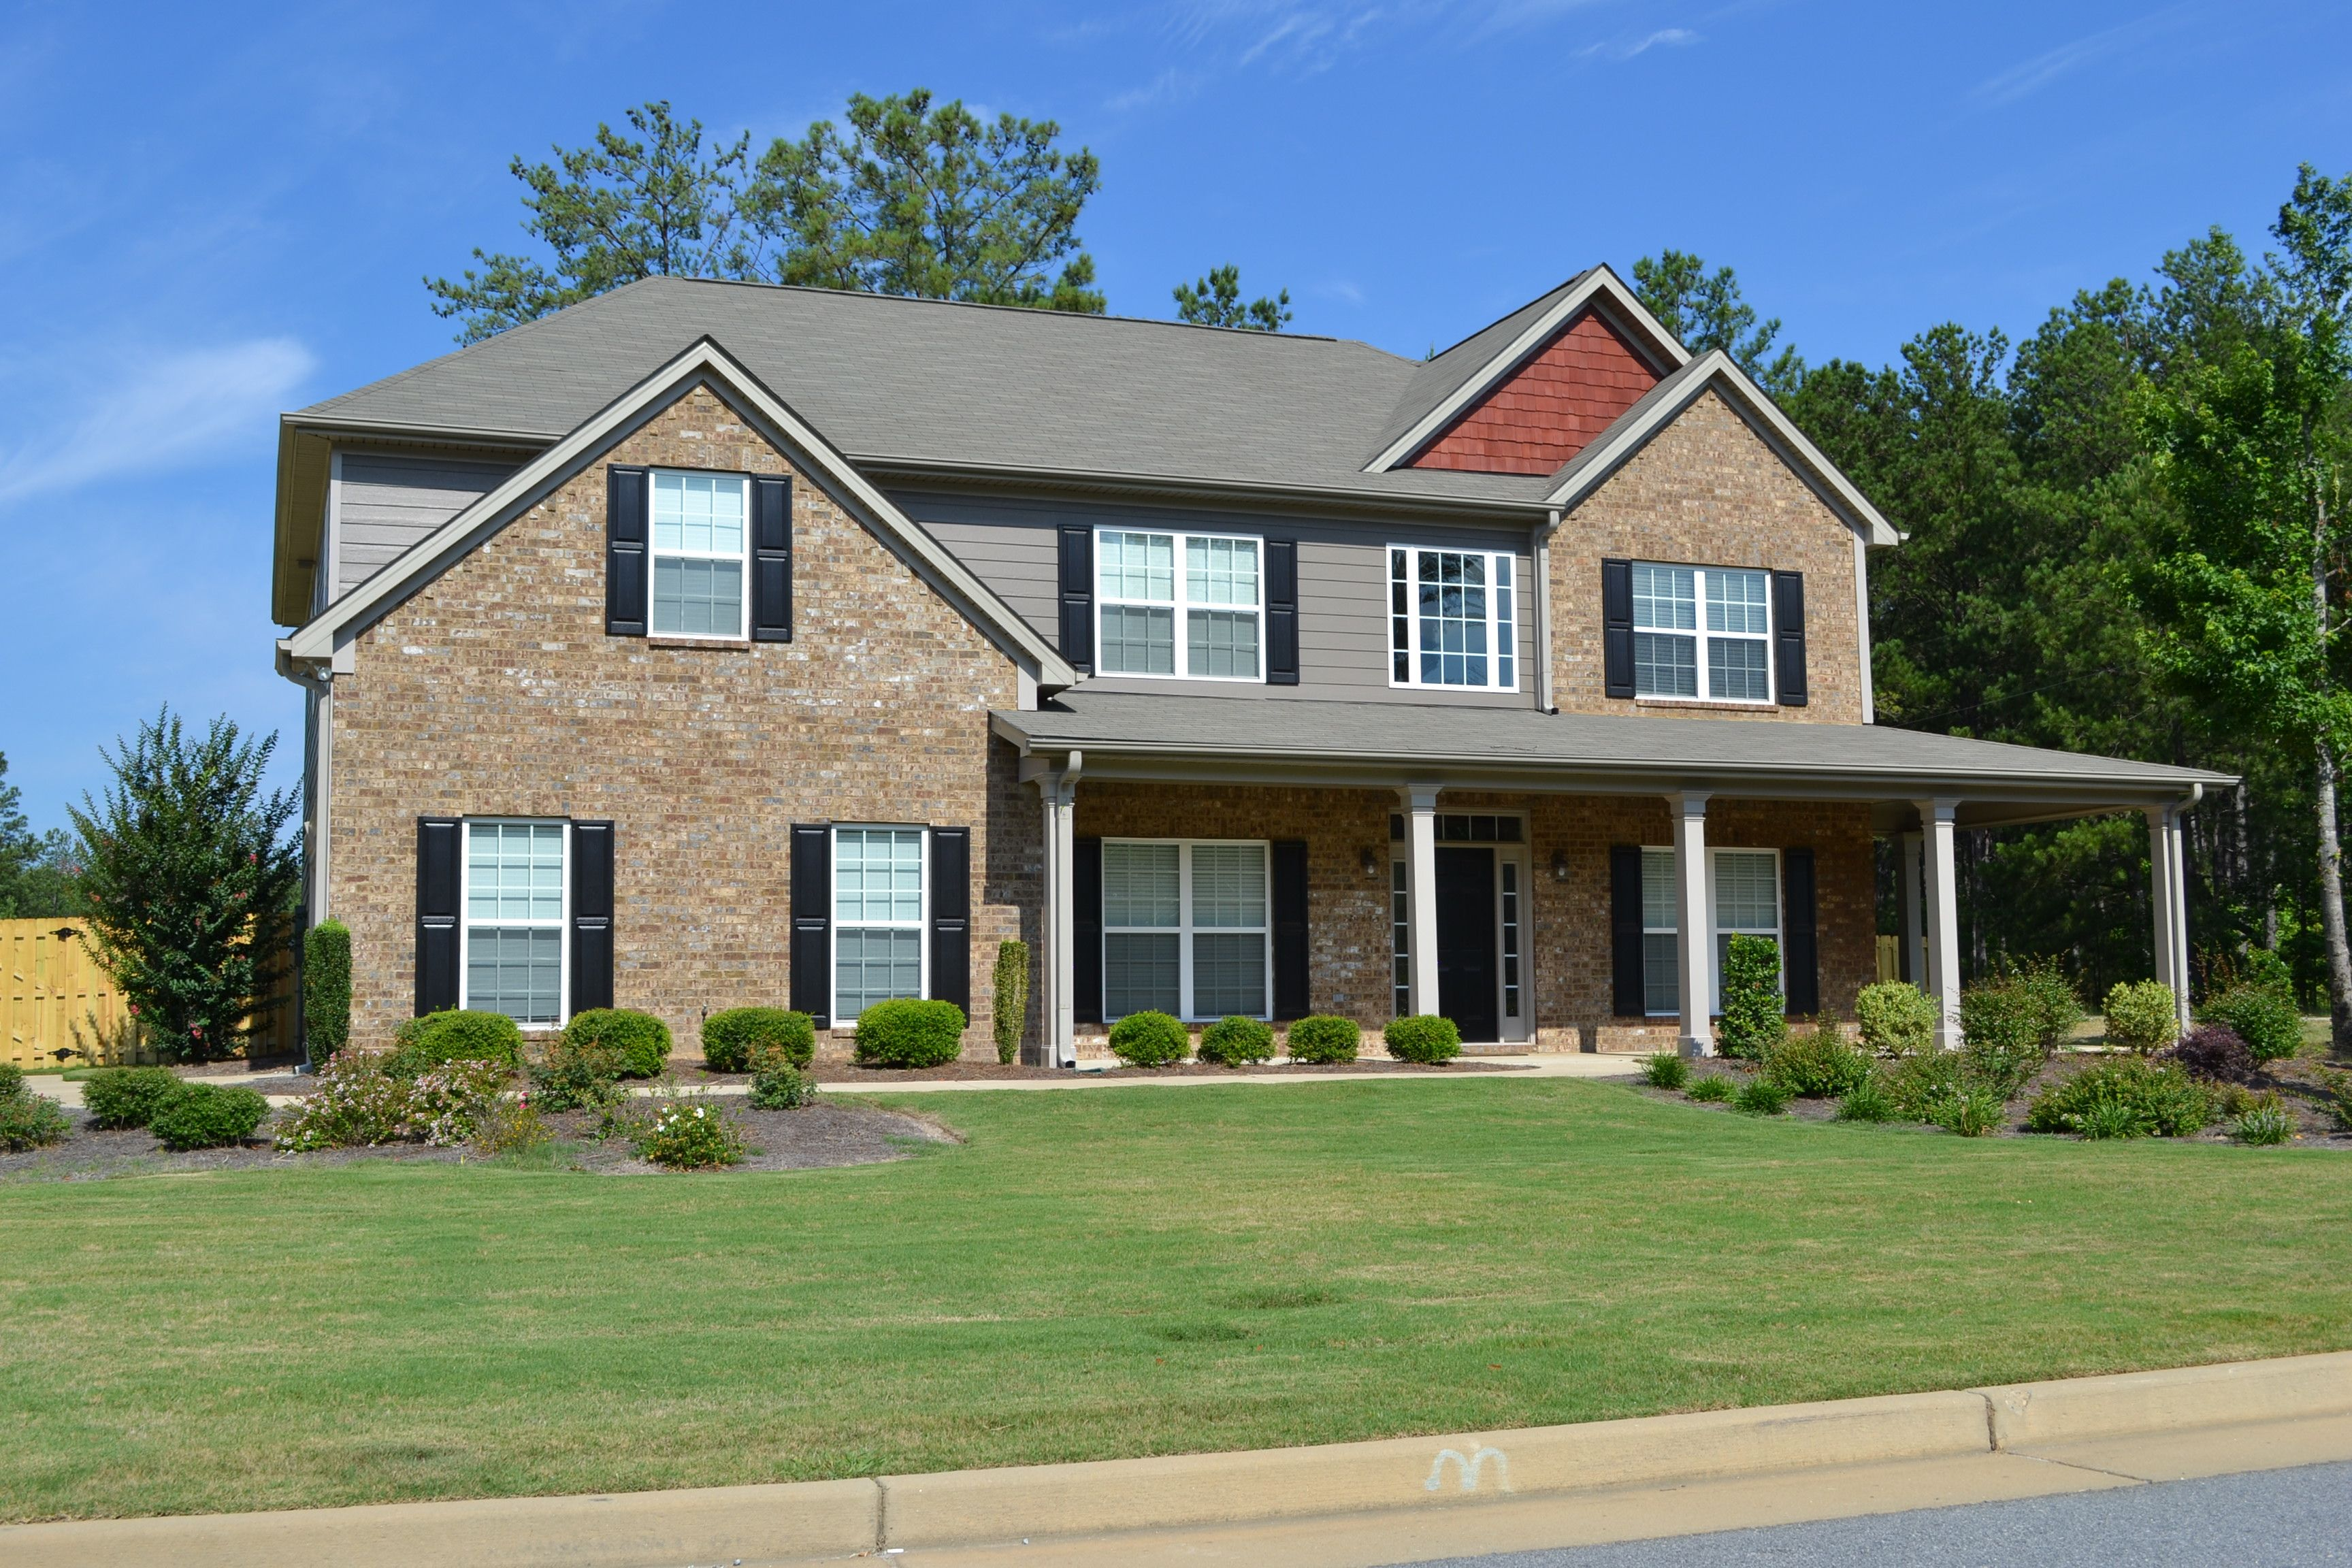 Single Family for Active at Sable Oaks - Aberdeen - Georgia 10230 Sable Court Midland, Georgia 31820 United States